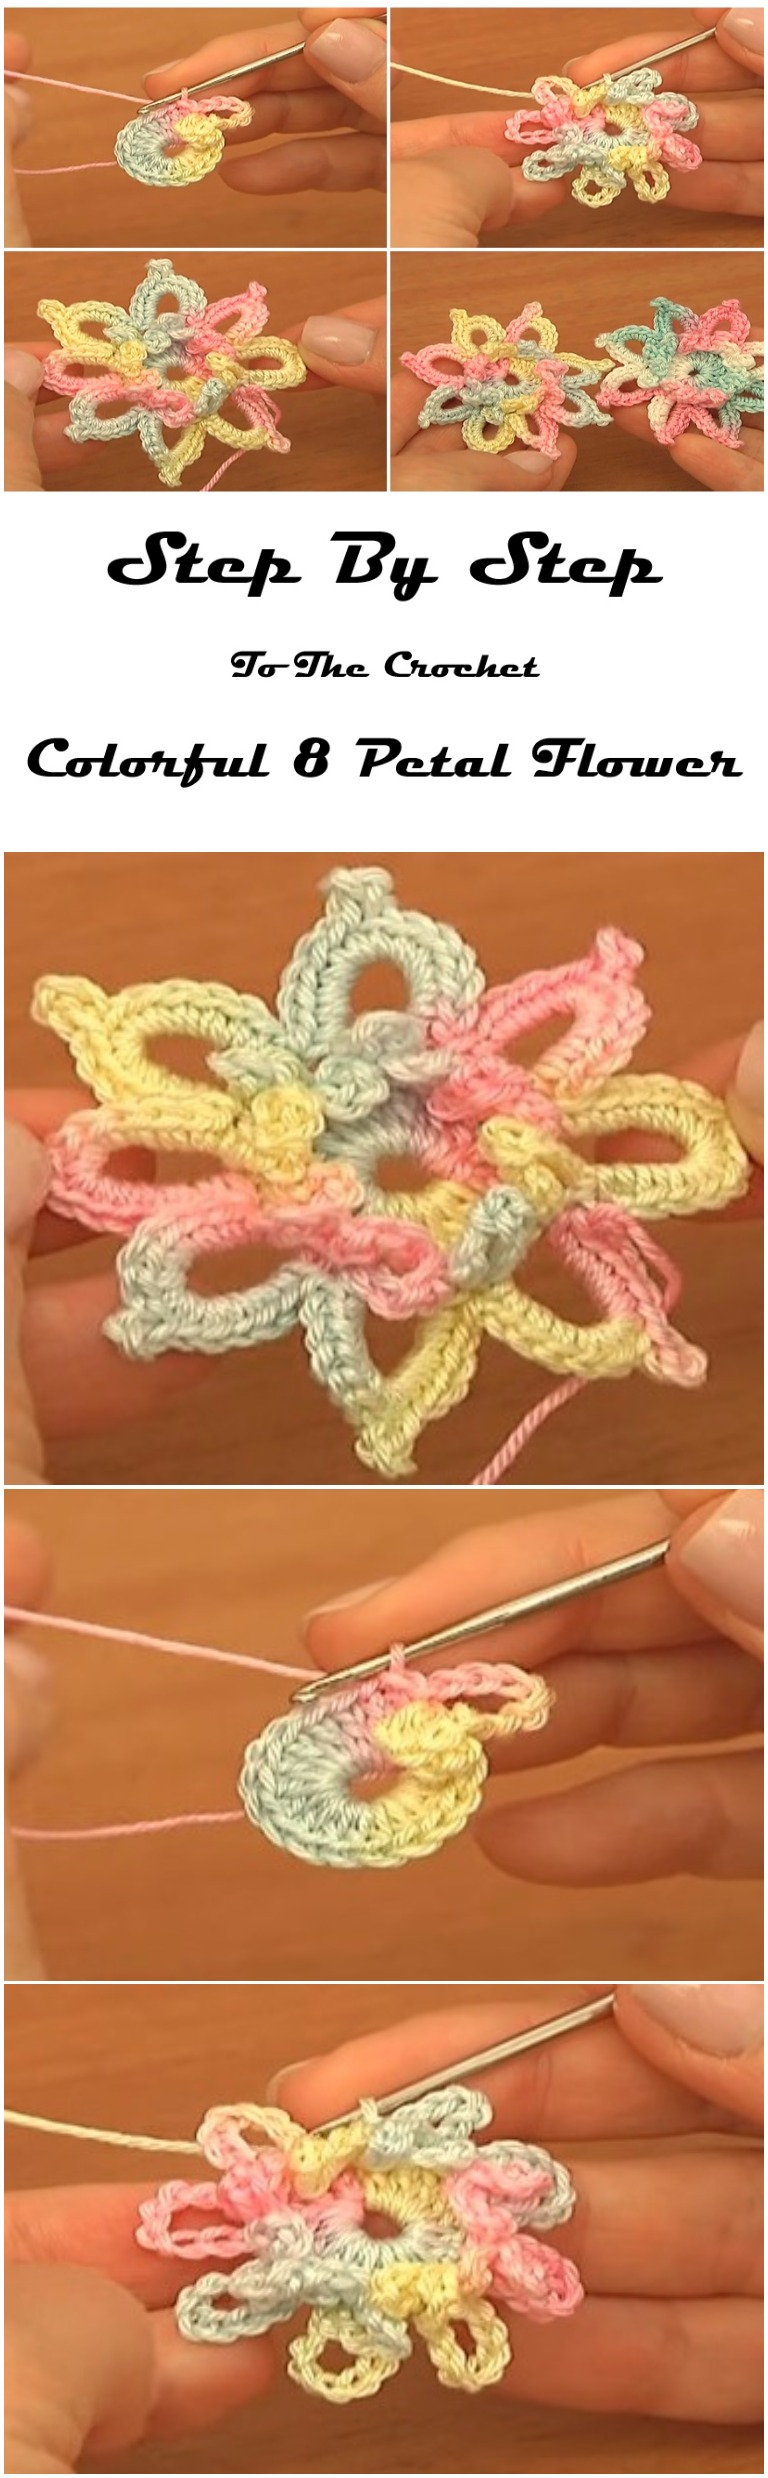 Crochet Colorful 8 Petal Flower